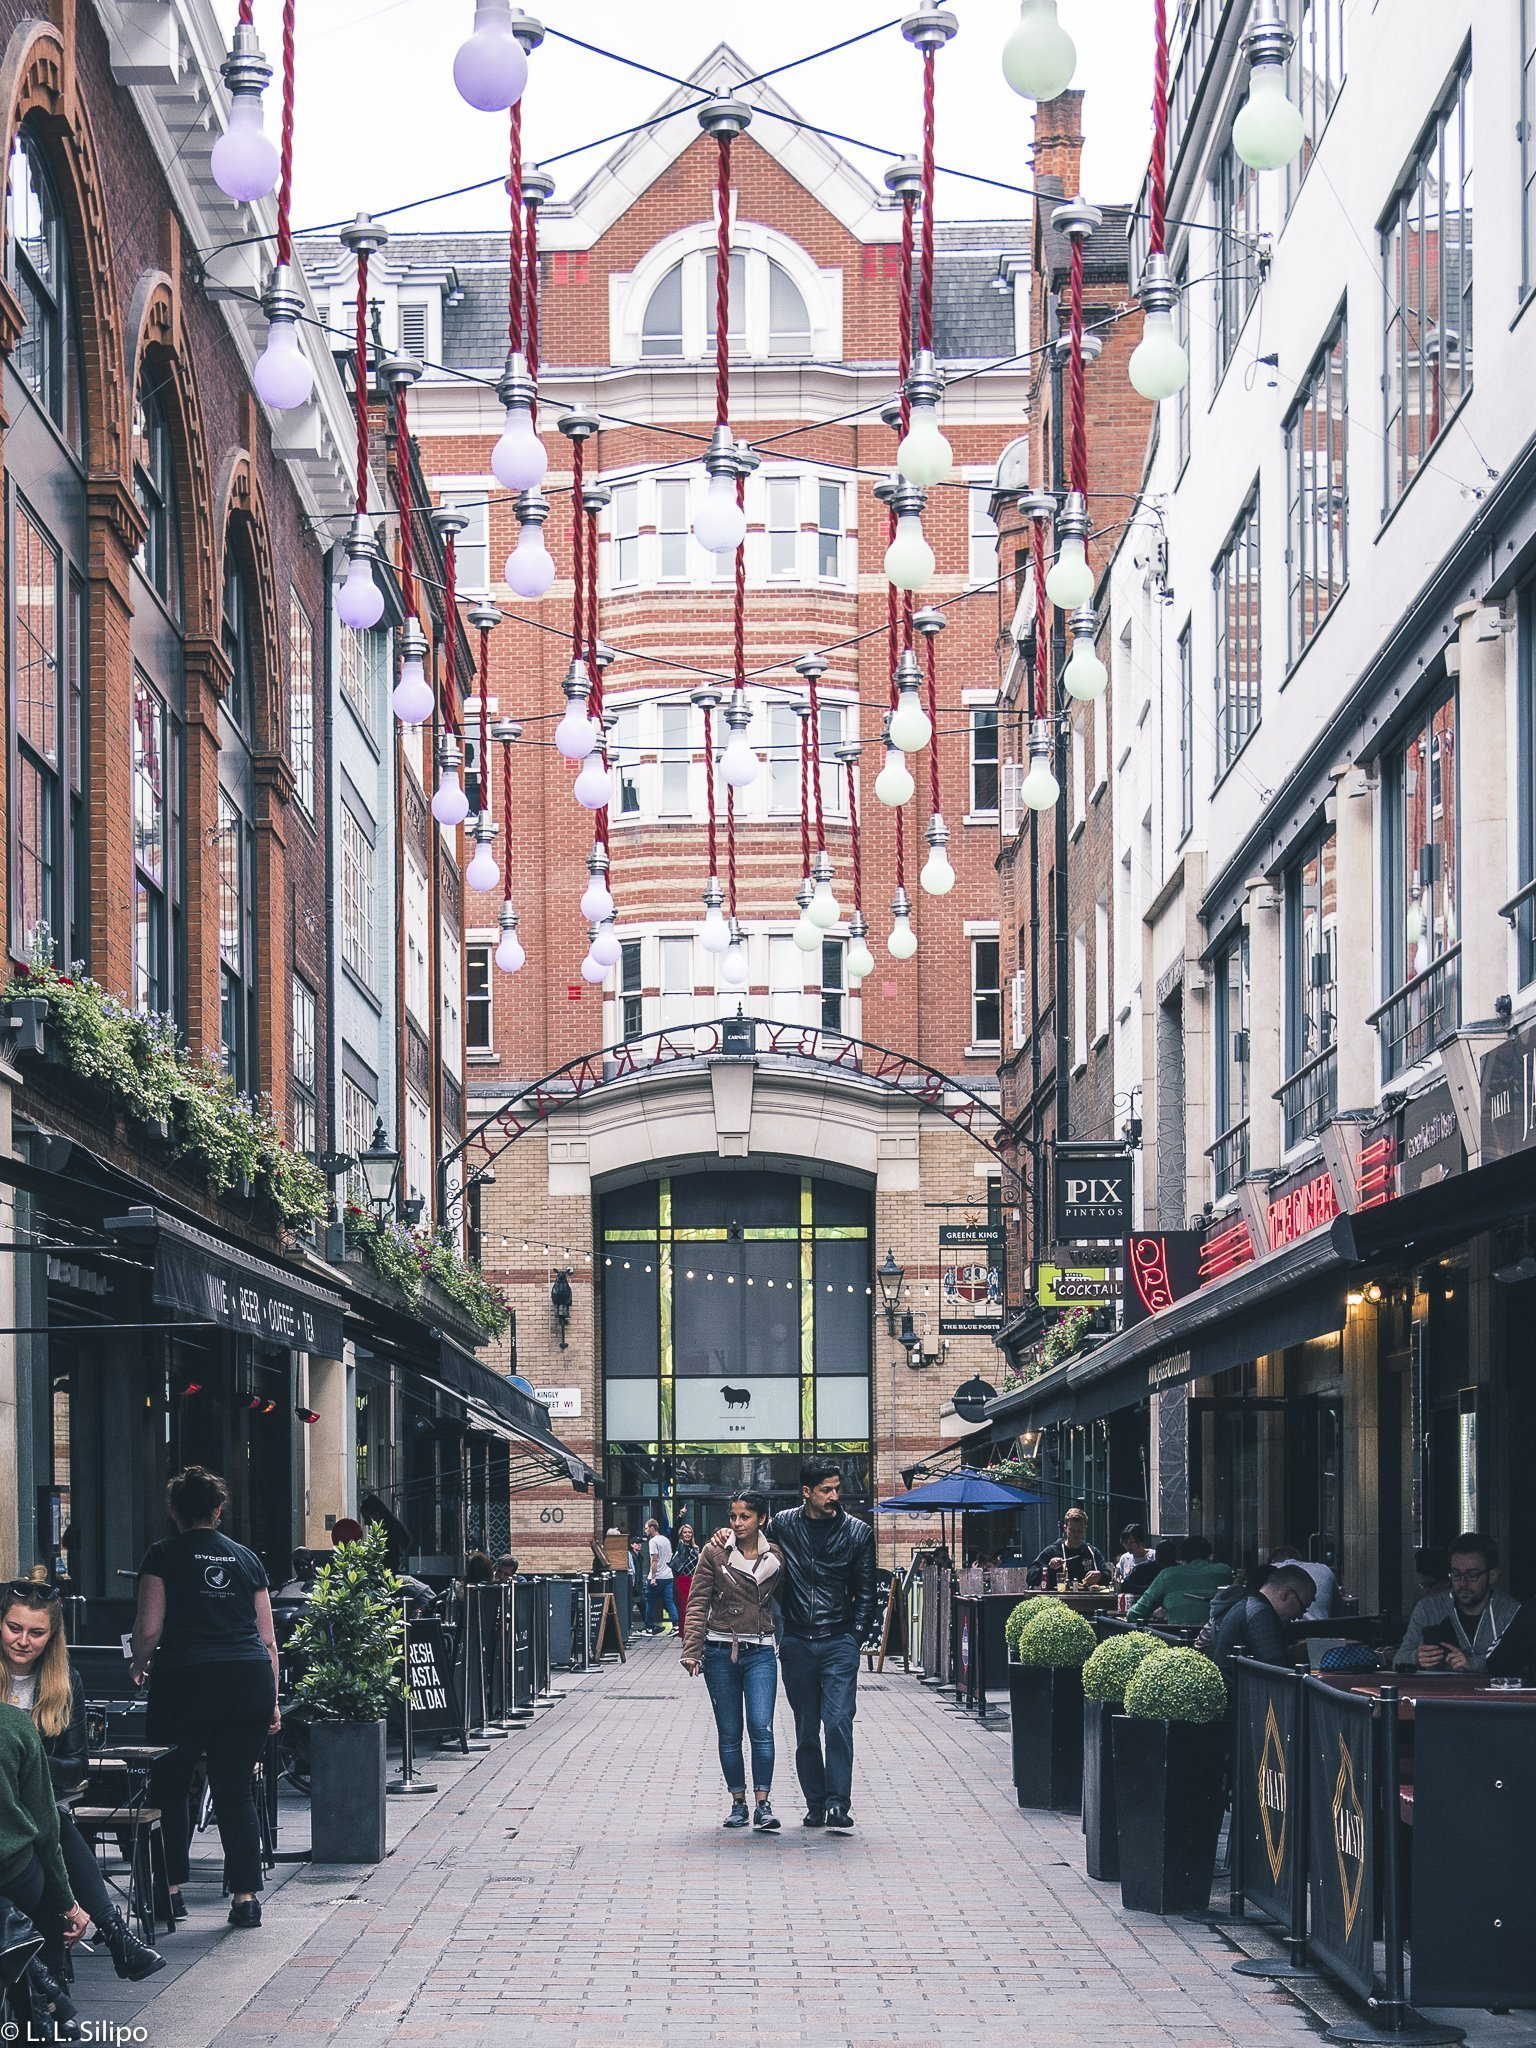 London, architecture, attraction, bridge, britain, british, building, camden, camden town, city, cityscape, covent, covent garden, england, english, europe, famous, famous place, finance, garden, global, great britain, historical, history, iconic, international, kingdom, market, metropolis, modern, punk, reflection, scene, shop, sightseeing, telephone, thames, tourism, tourist, tower bridge, transport, travel, uk, united, united kingdom, urban, vacation, westminster